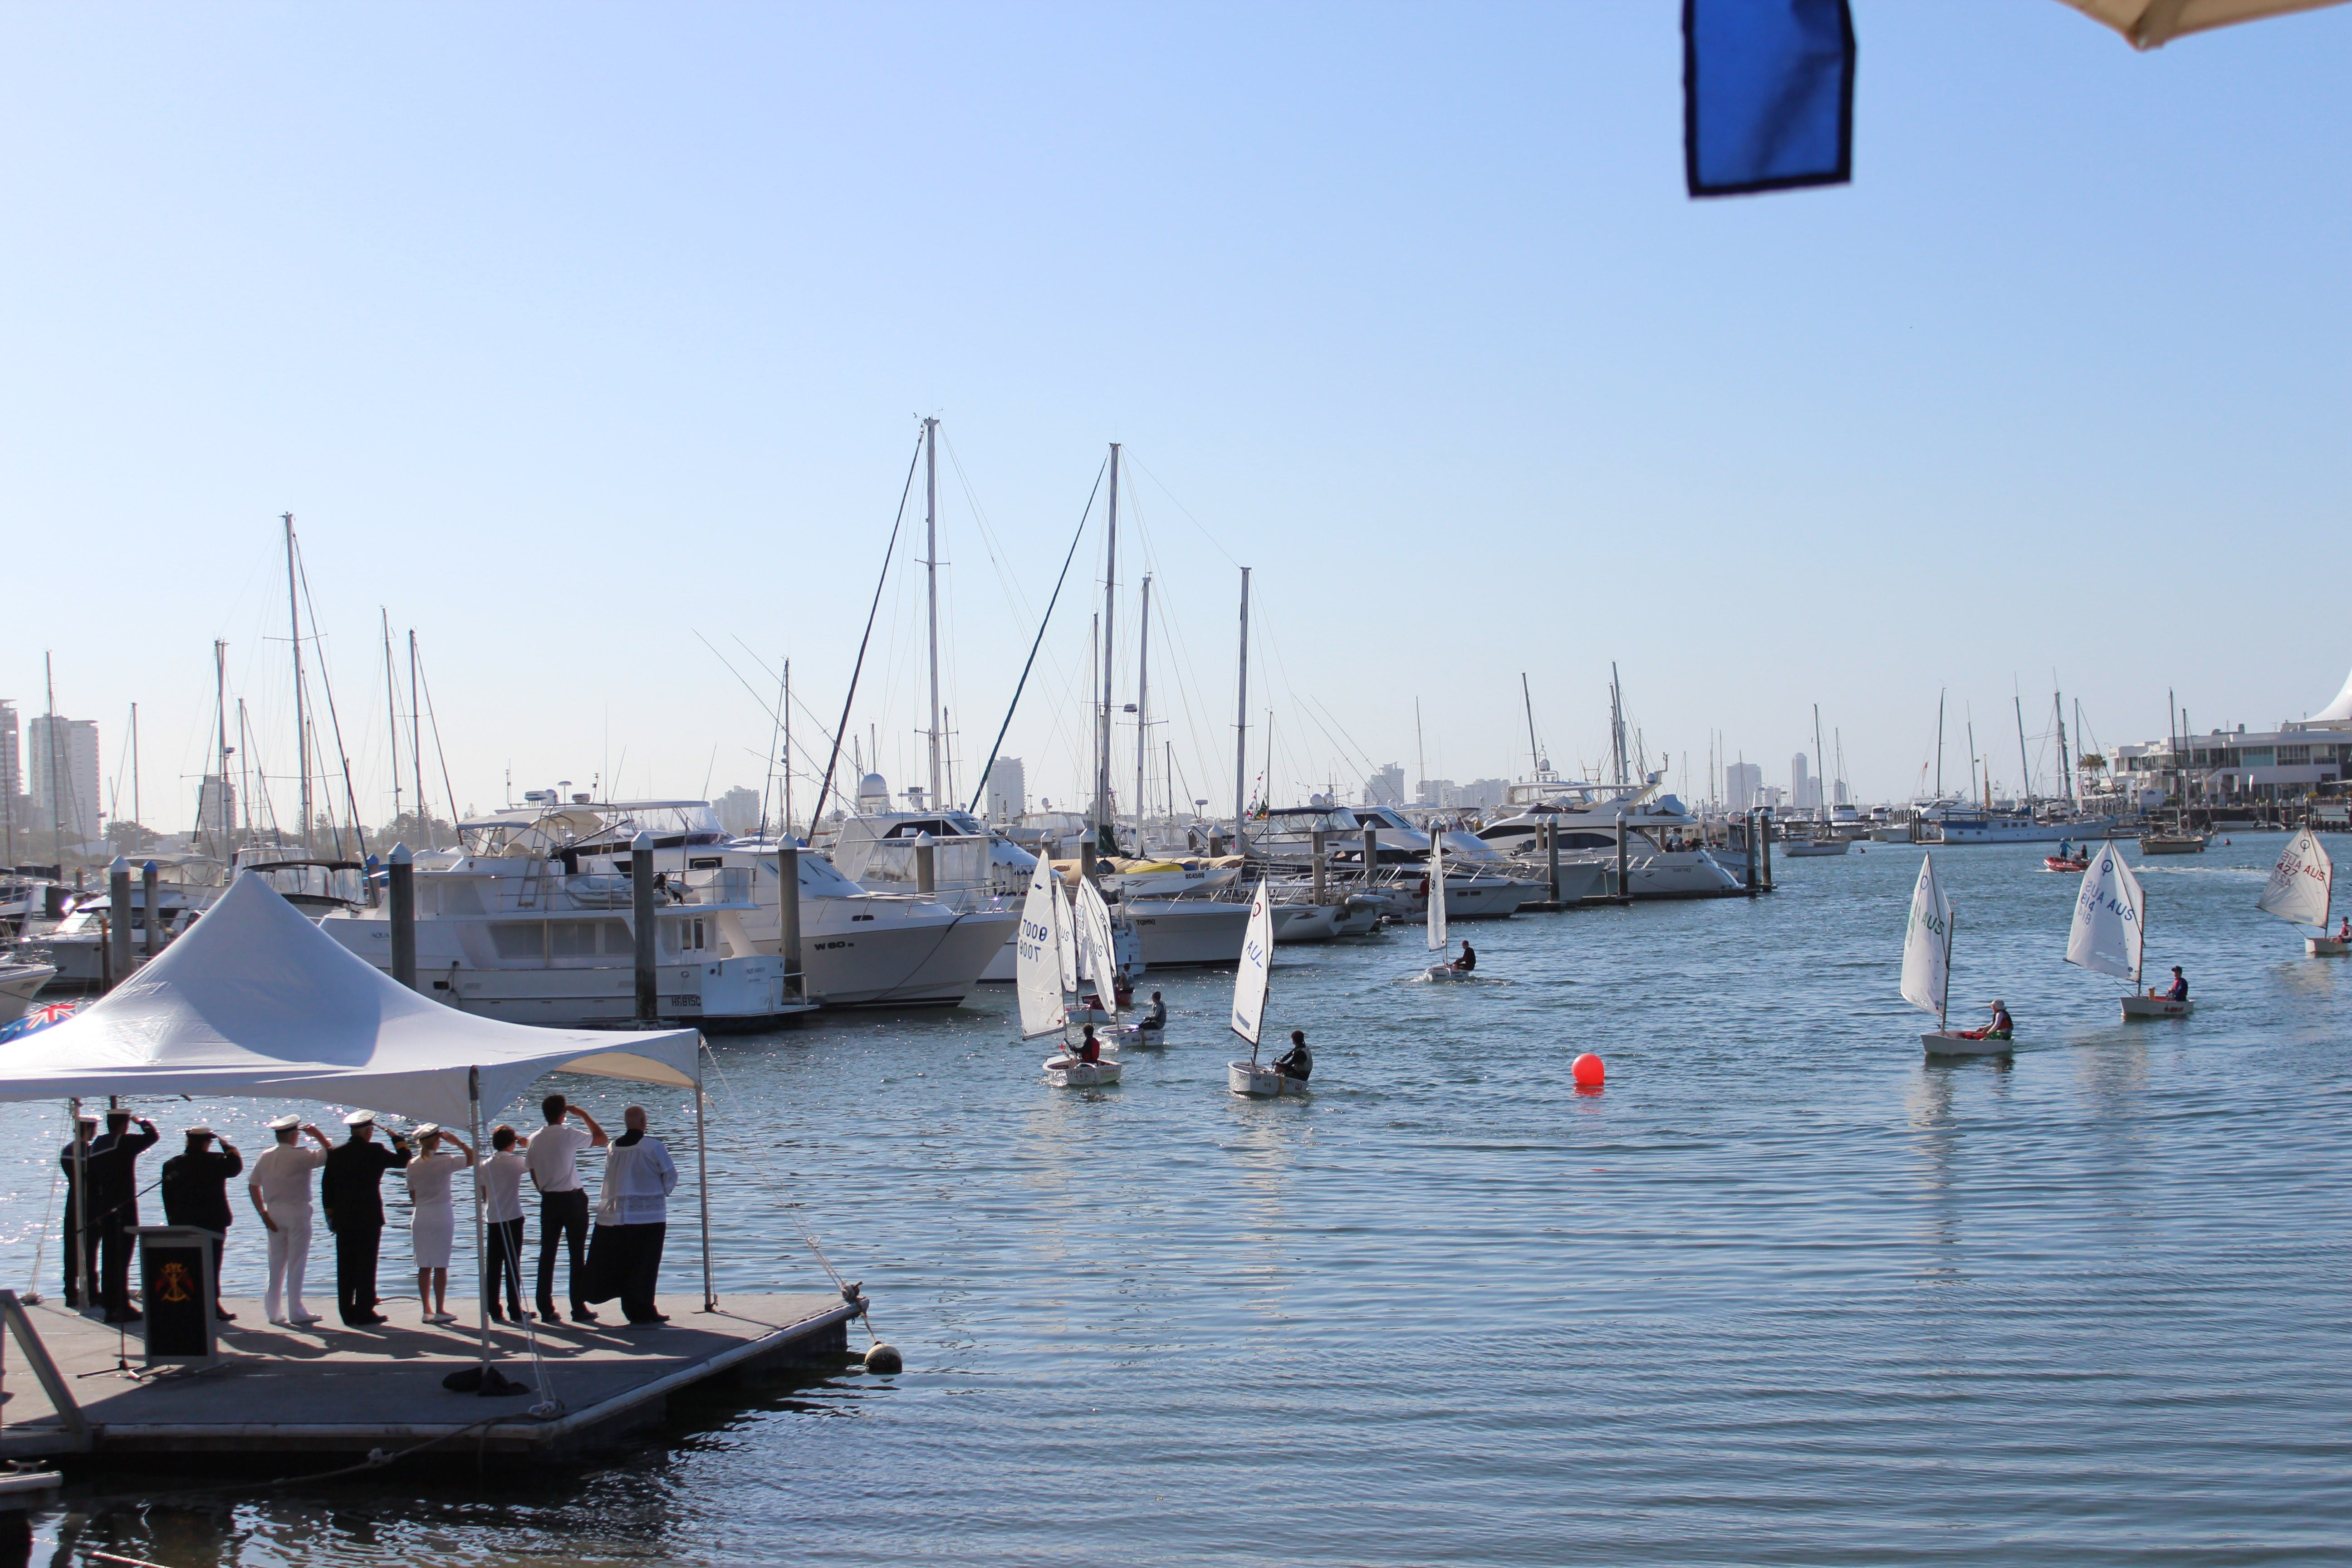 73rd Sail Past and Blessing of the Fleet - Pubs and Clubs